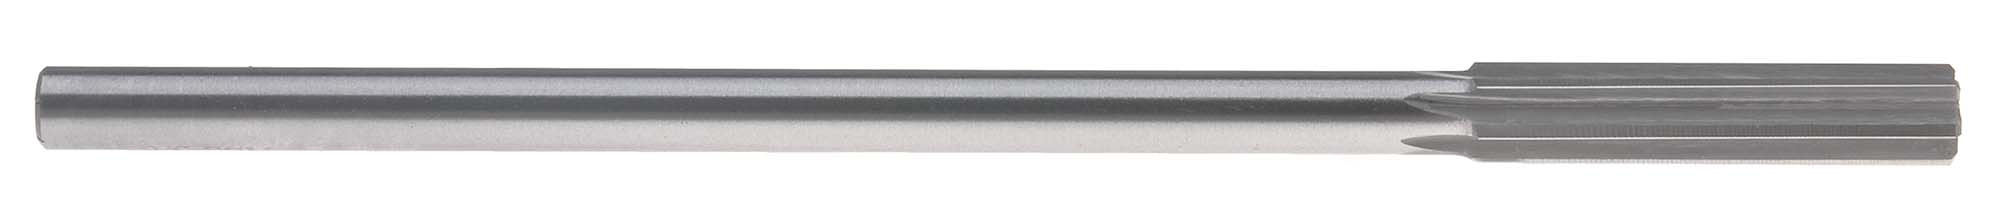 33/64 Straight Shank Chucking Reamer, Straight Flute, High Speed Steel